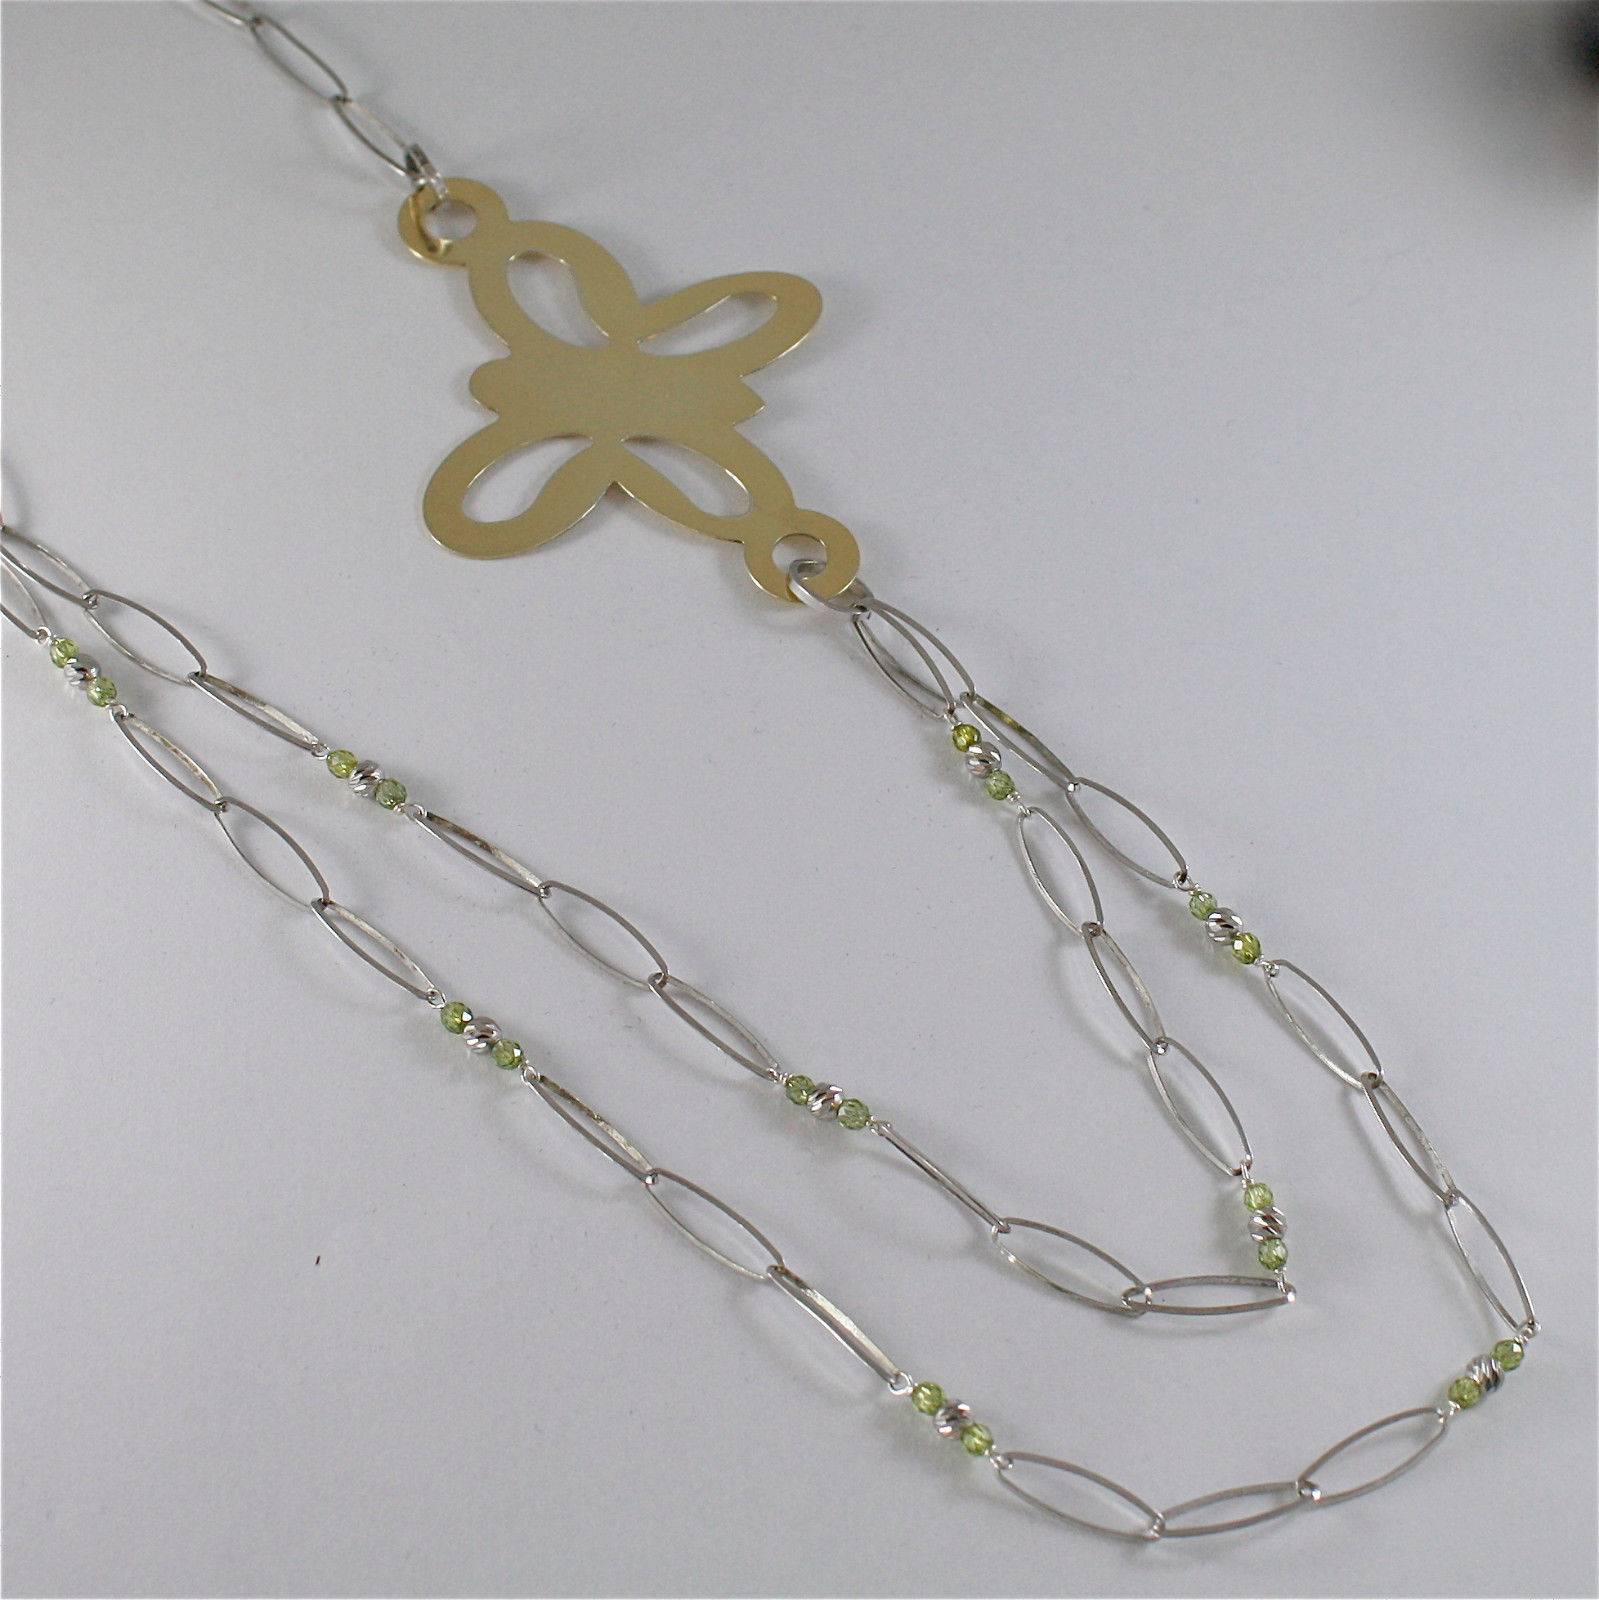 925 SILVER NECKLACE WITH MULTIFACETED BALLS AND BUTTERFLY, MADE IN ITALY 240 USD